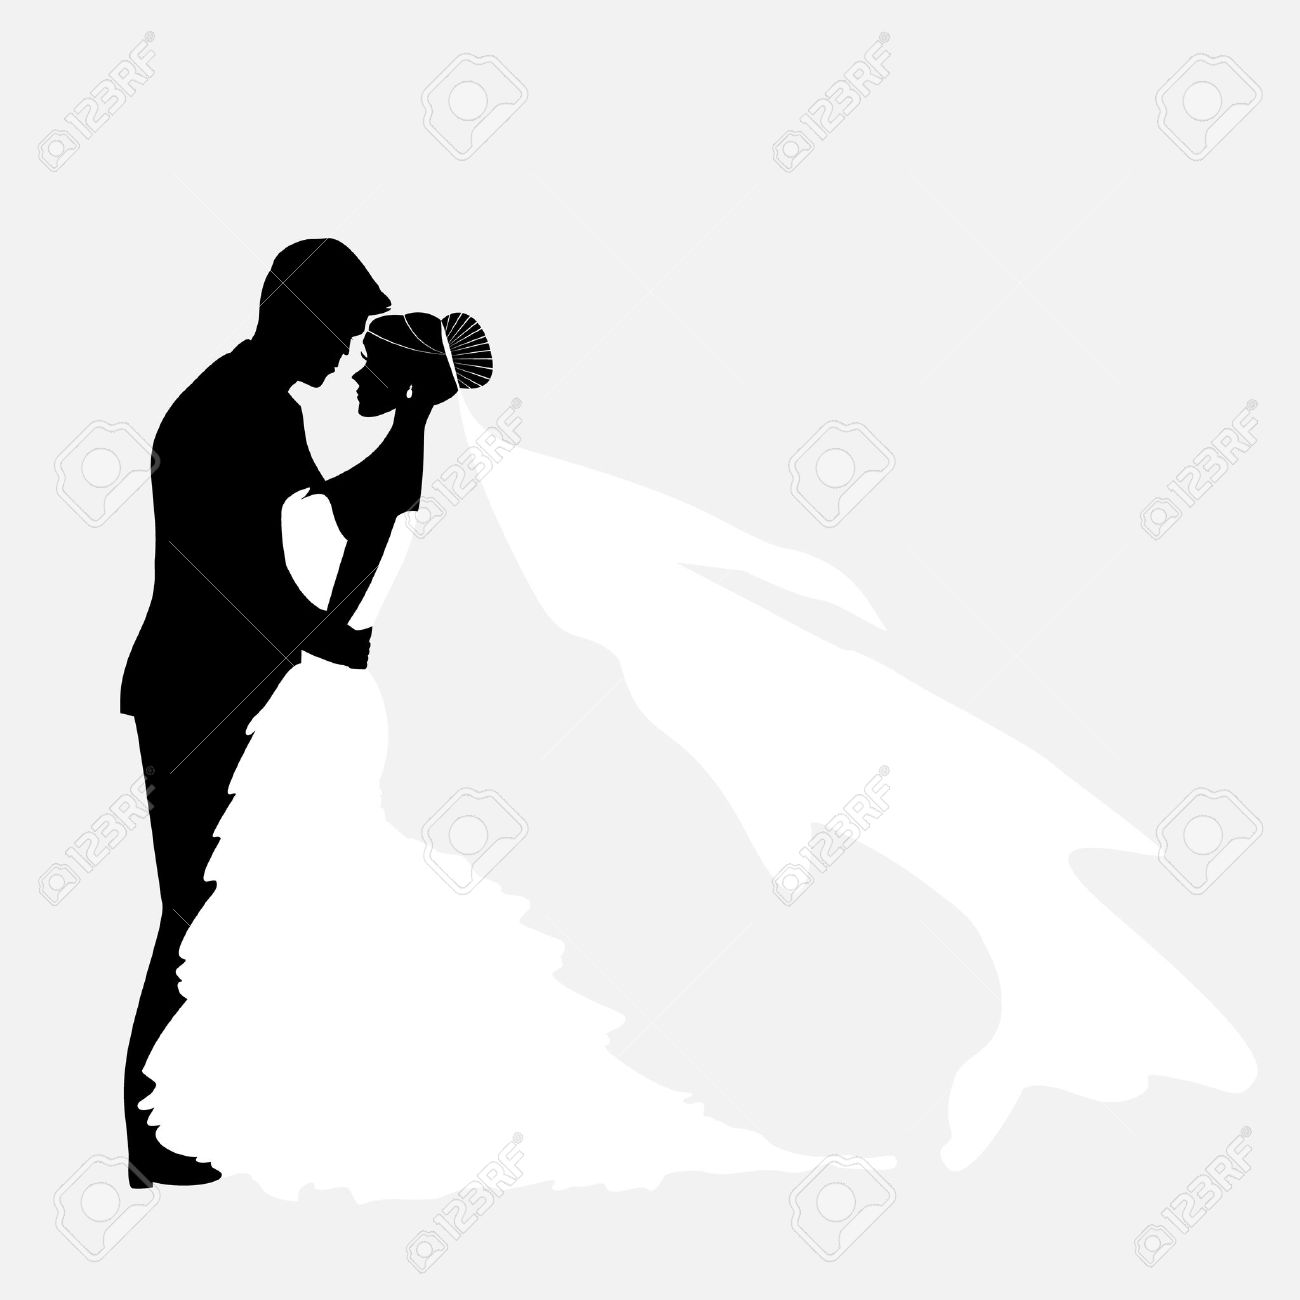 Bride And Groom Vector Couples Silhouette For Wedding Invitation